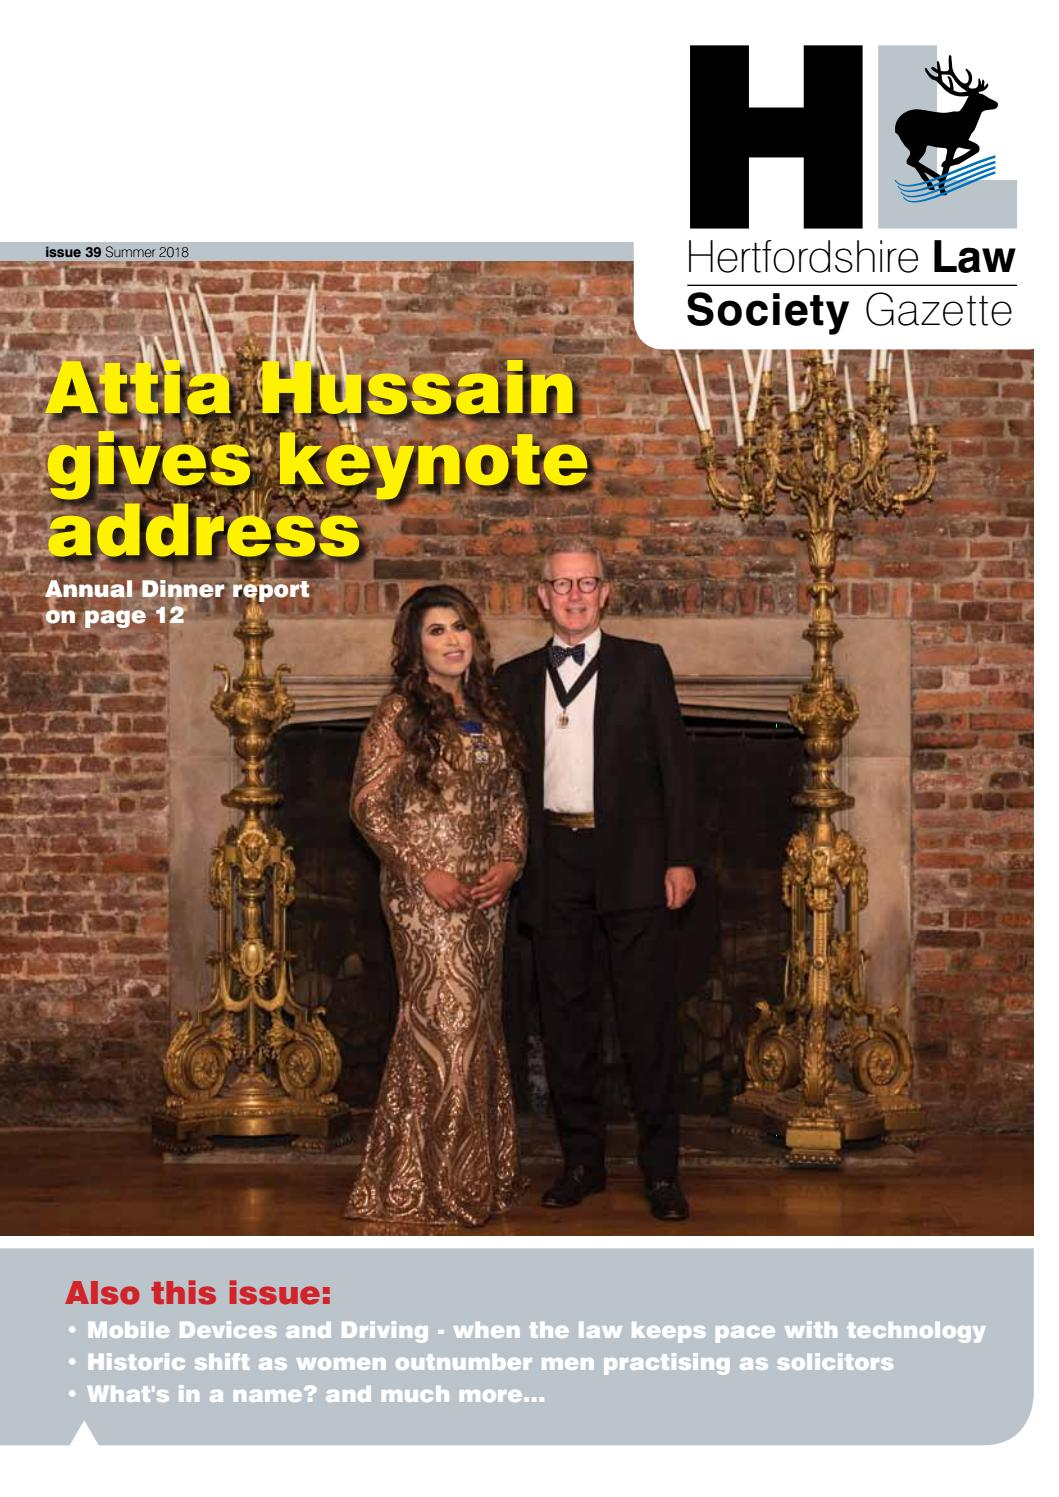 Herts Law Society Gazette issue 39 online edition by EPC